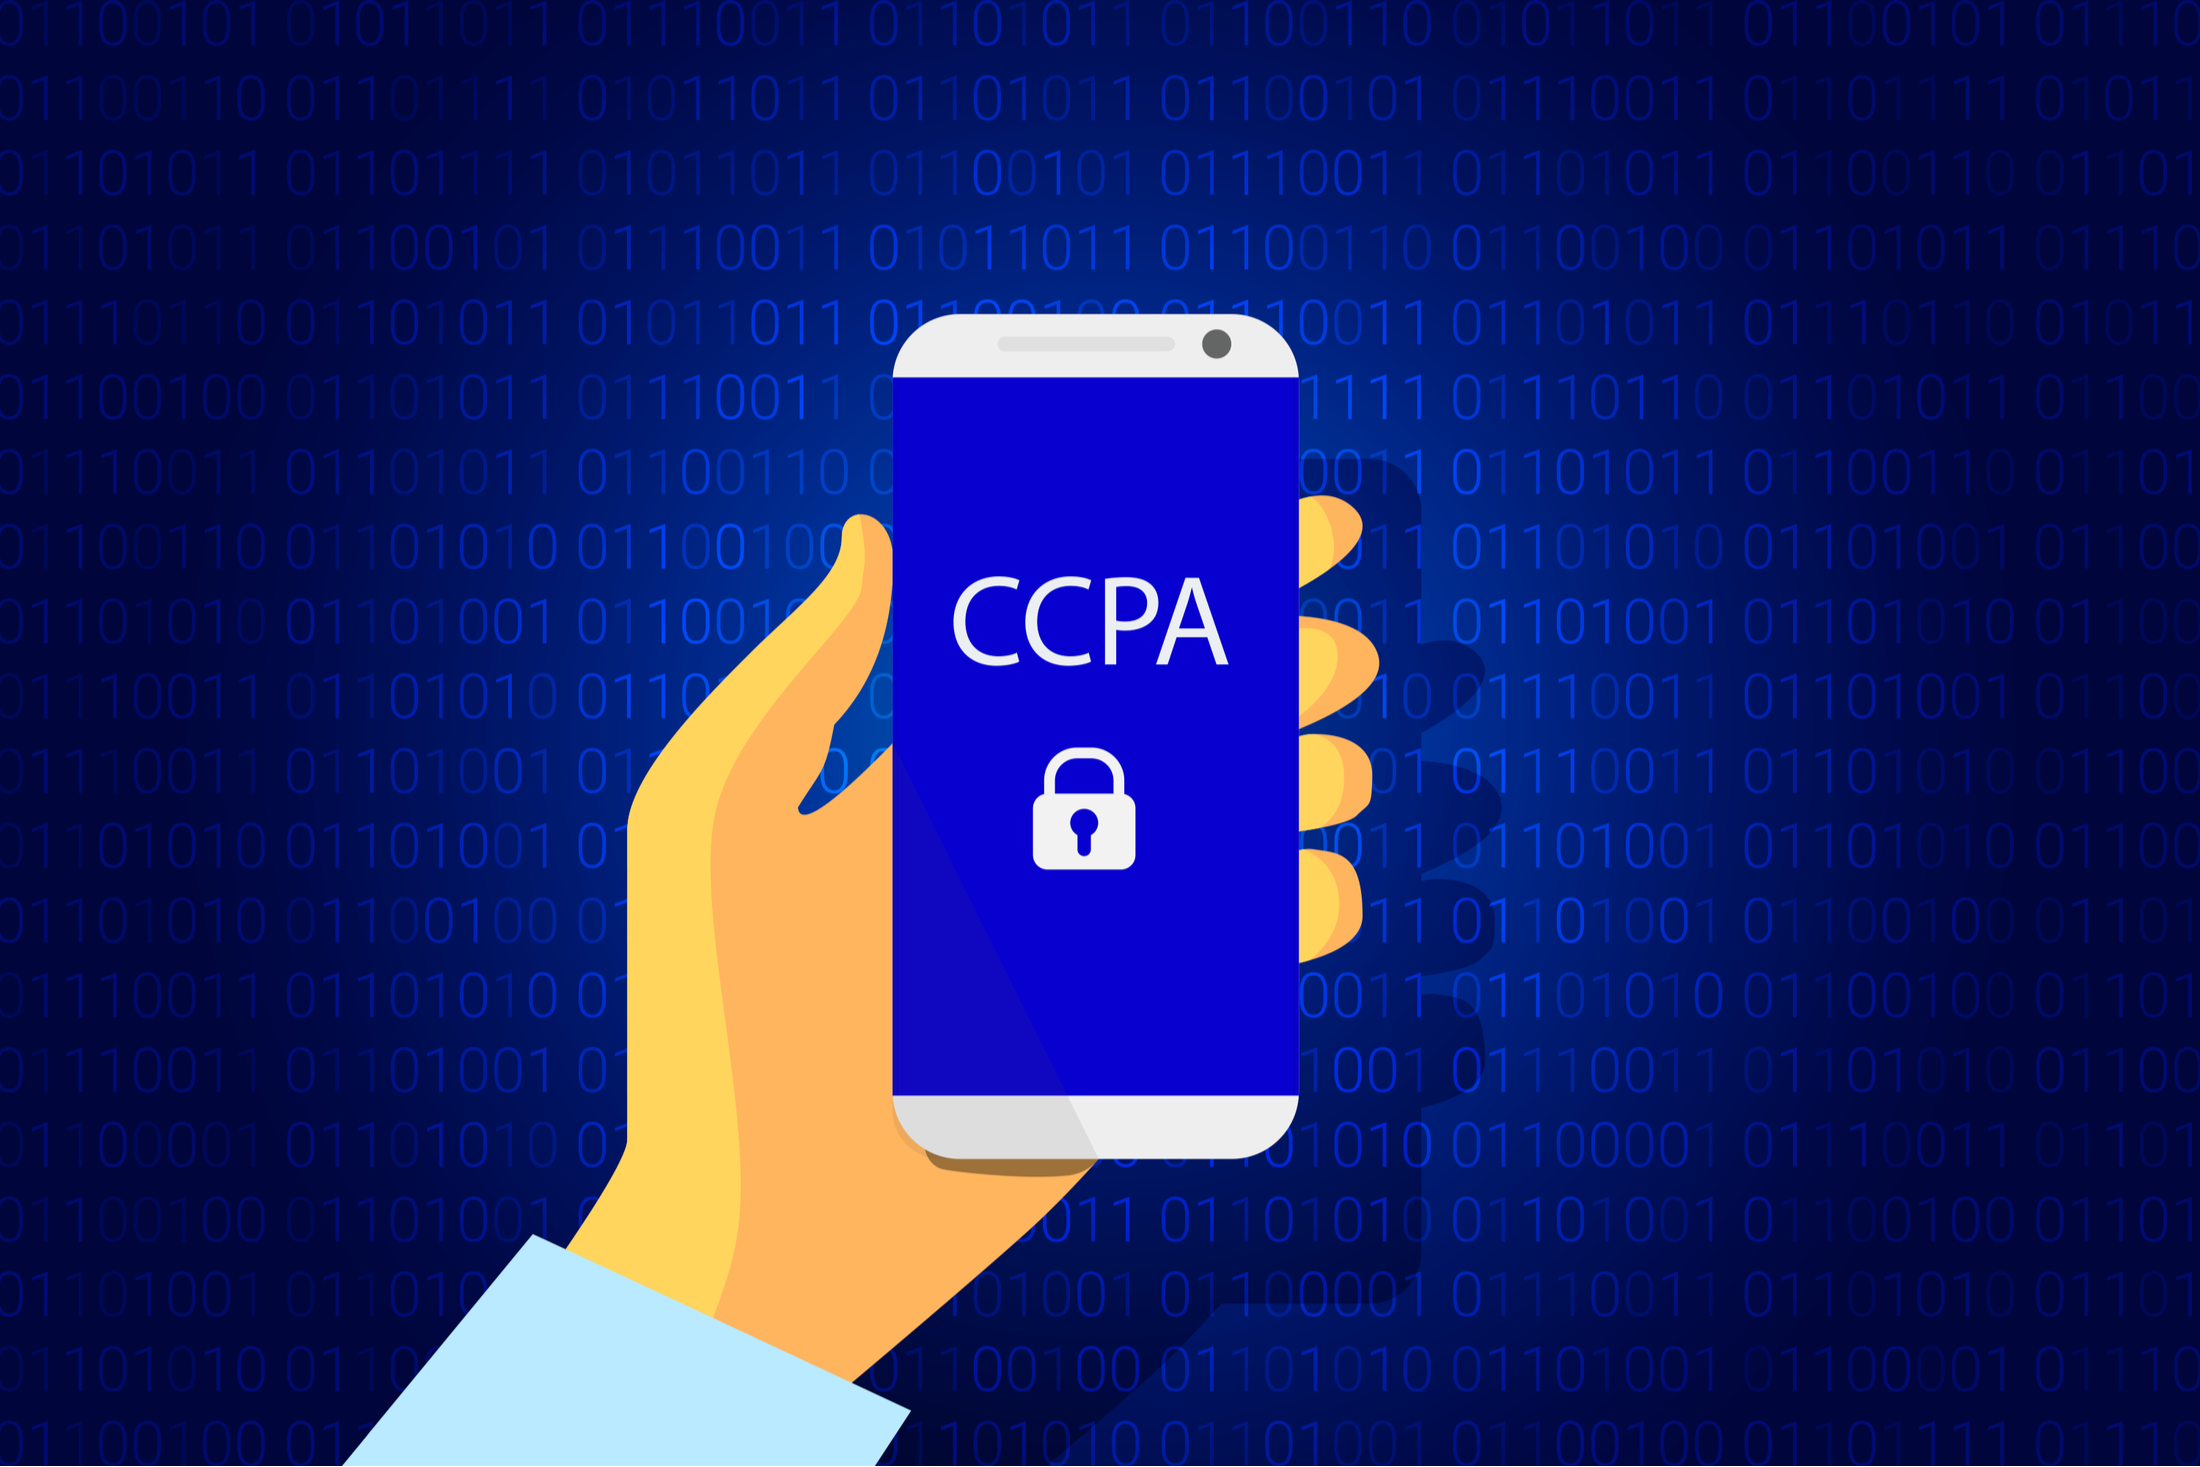 Meeting CCPA Data Privacy Standards at Trade Shows